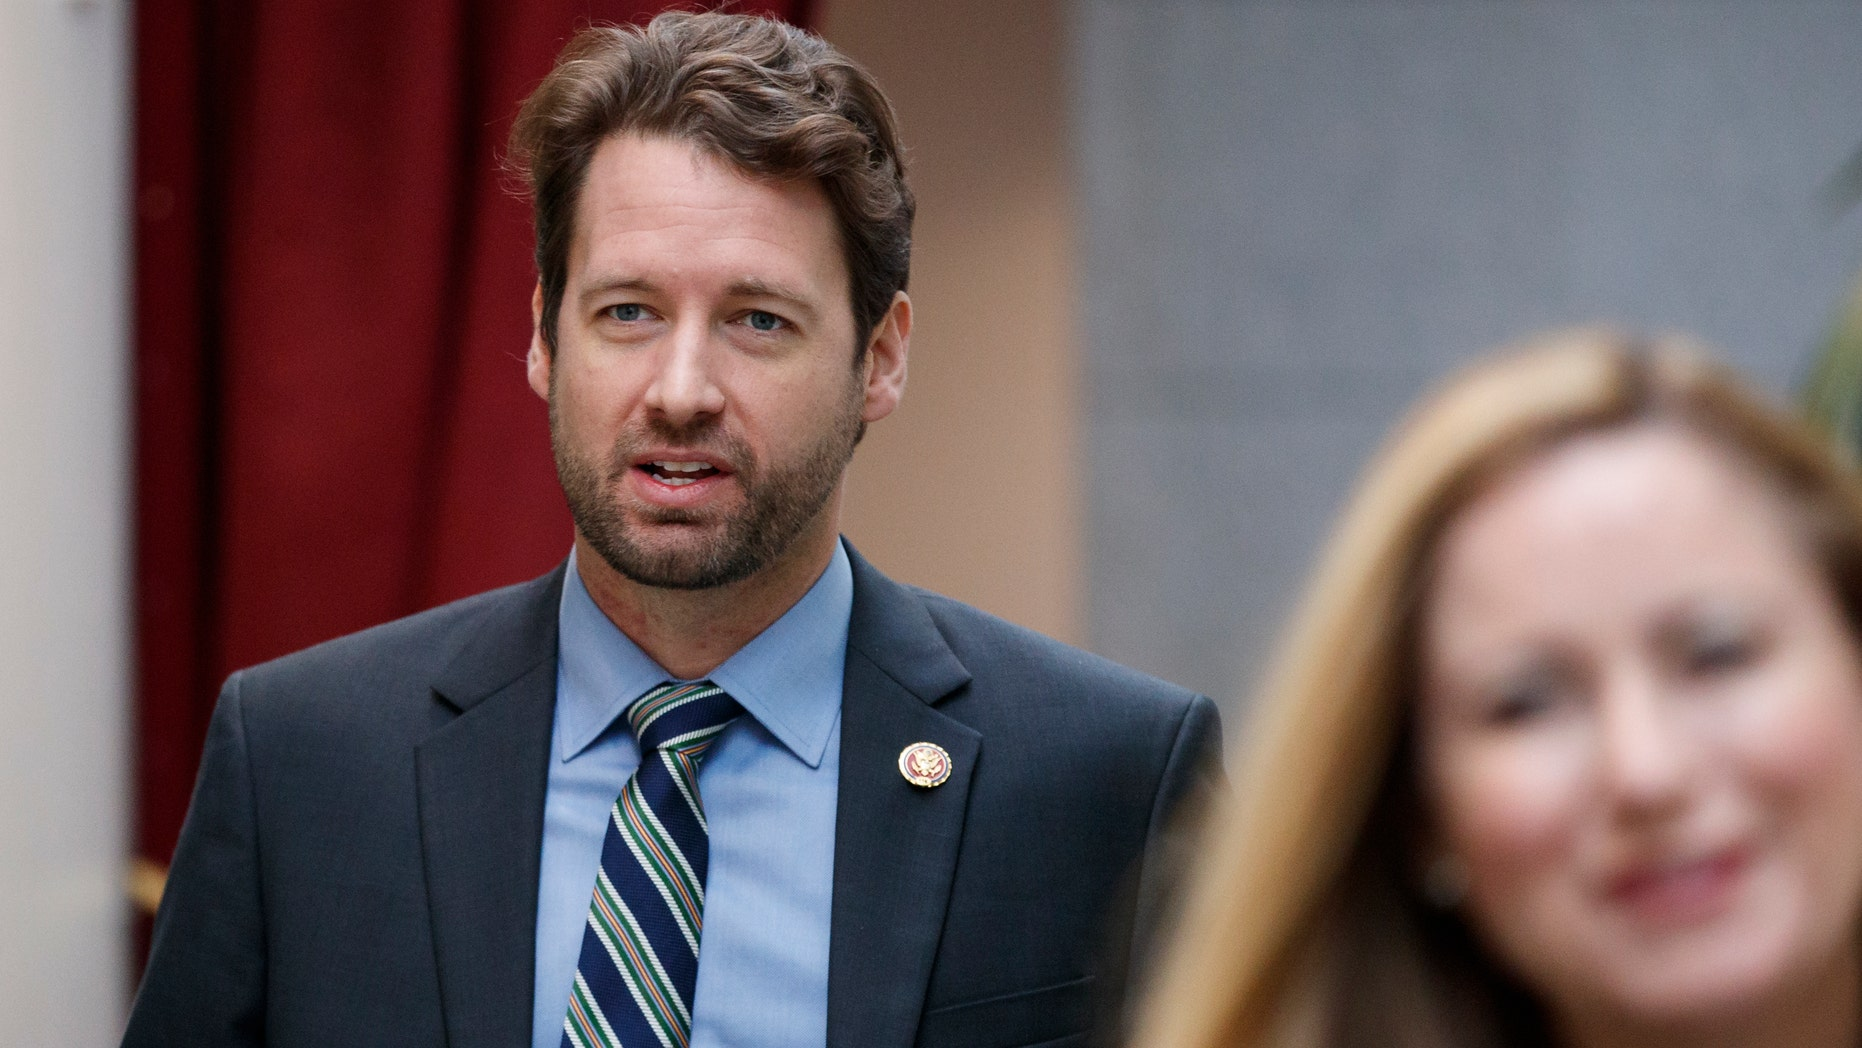 Rep. Joe Cunningham, D-S.C., was barred from walking onto the House floor as he tried to bring a six-pack of beer with him as a gift.